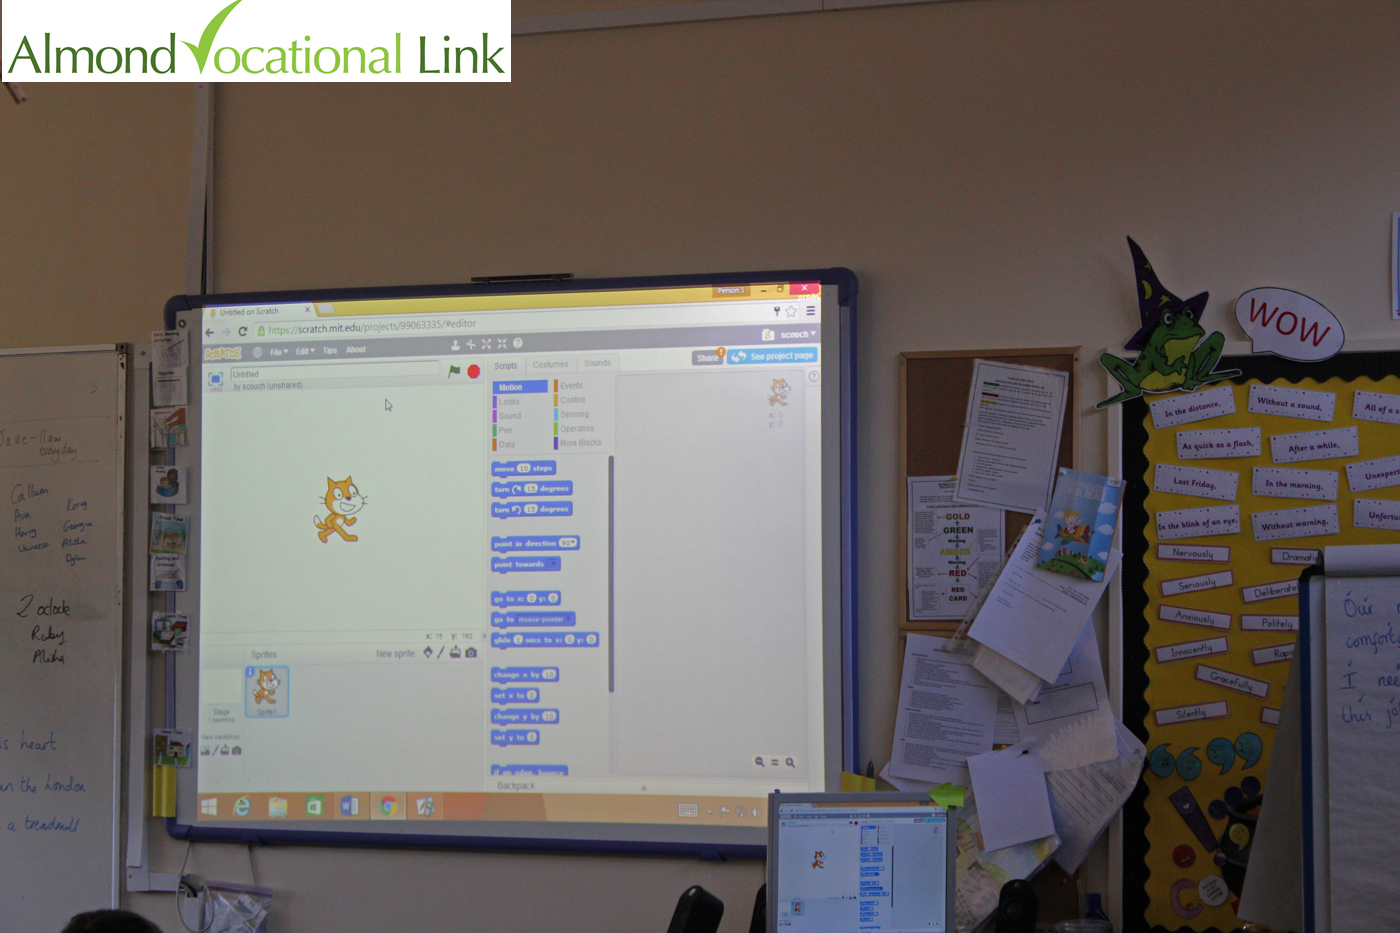 Modern Technologies Used In Classroom : Primary school using modern technologies in classroom